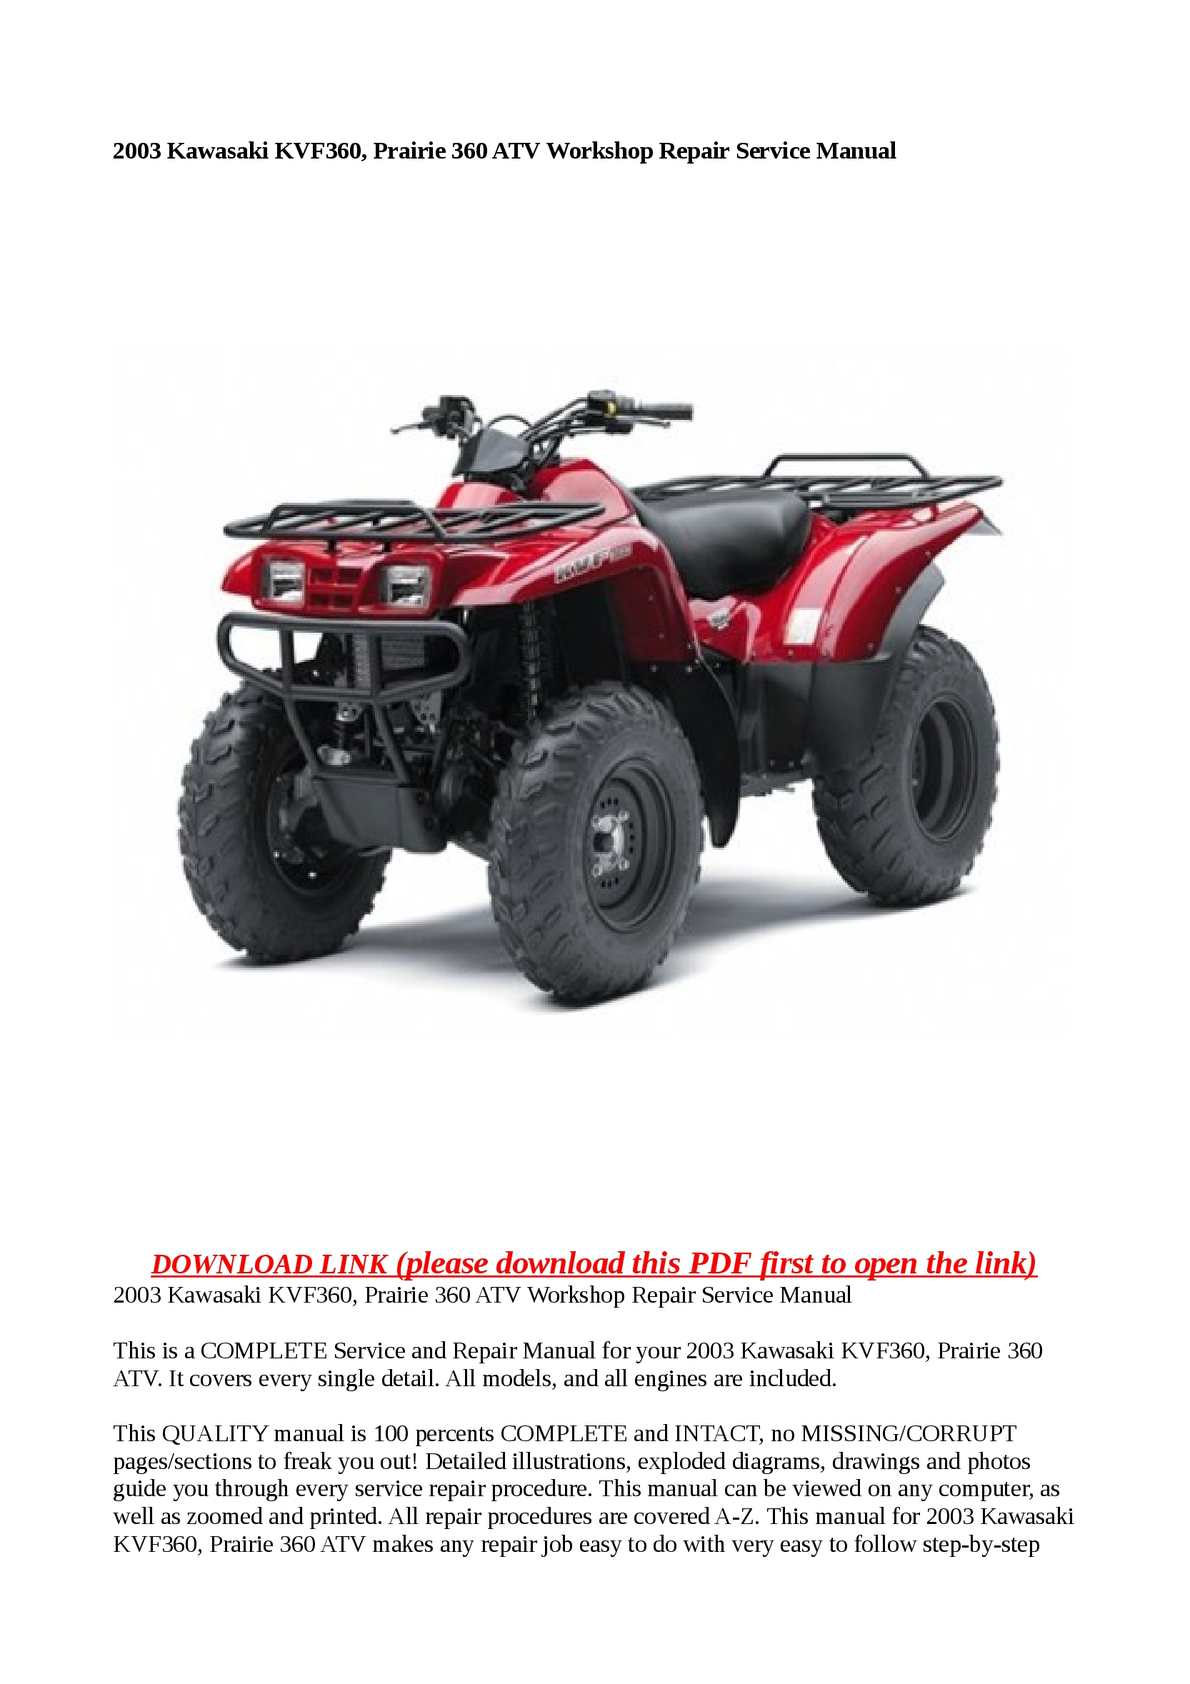 Calaméo - 2003 Kawasaki KVF360, Prairie 360 ATV Workshop Repair Service  Manual